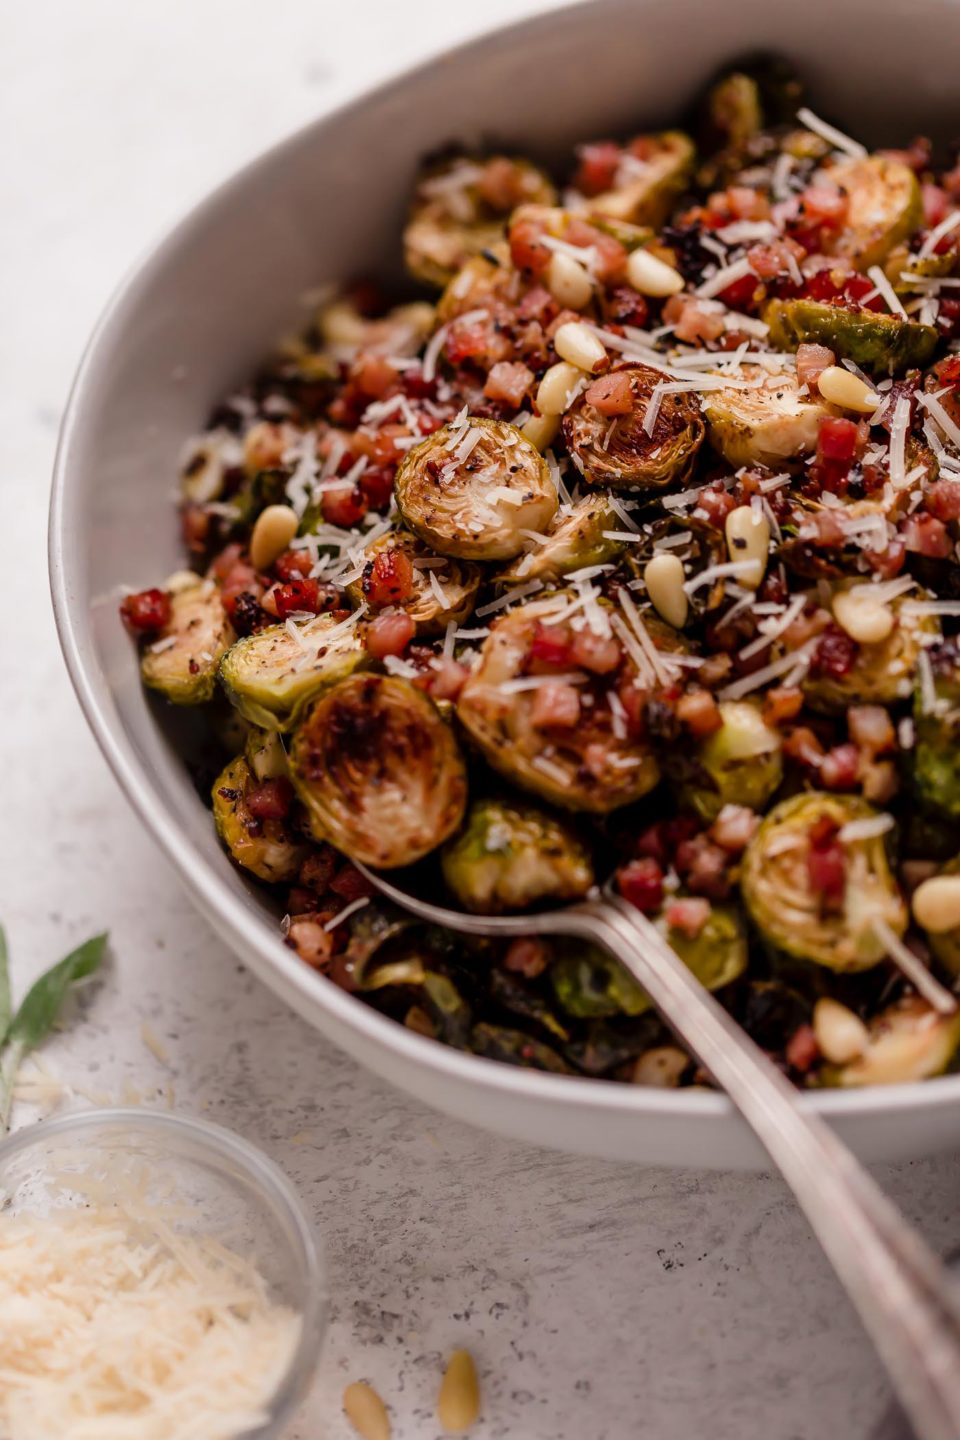 Roasted brussels sprouts in a large white serving bowl, with pancetta, pine nuts and finely shredded parmesan. The bowl is on a white surface, next to a small bowl of finely grated parmesan & some fresh sage leaves.